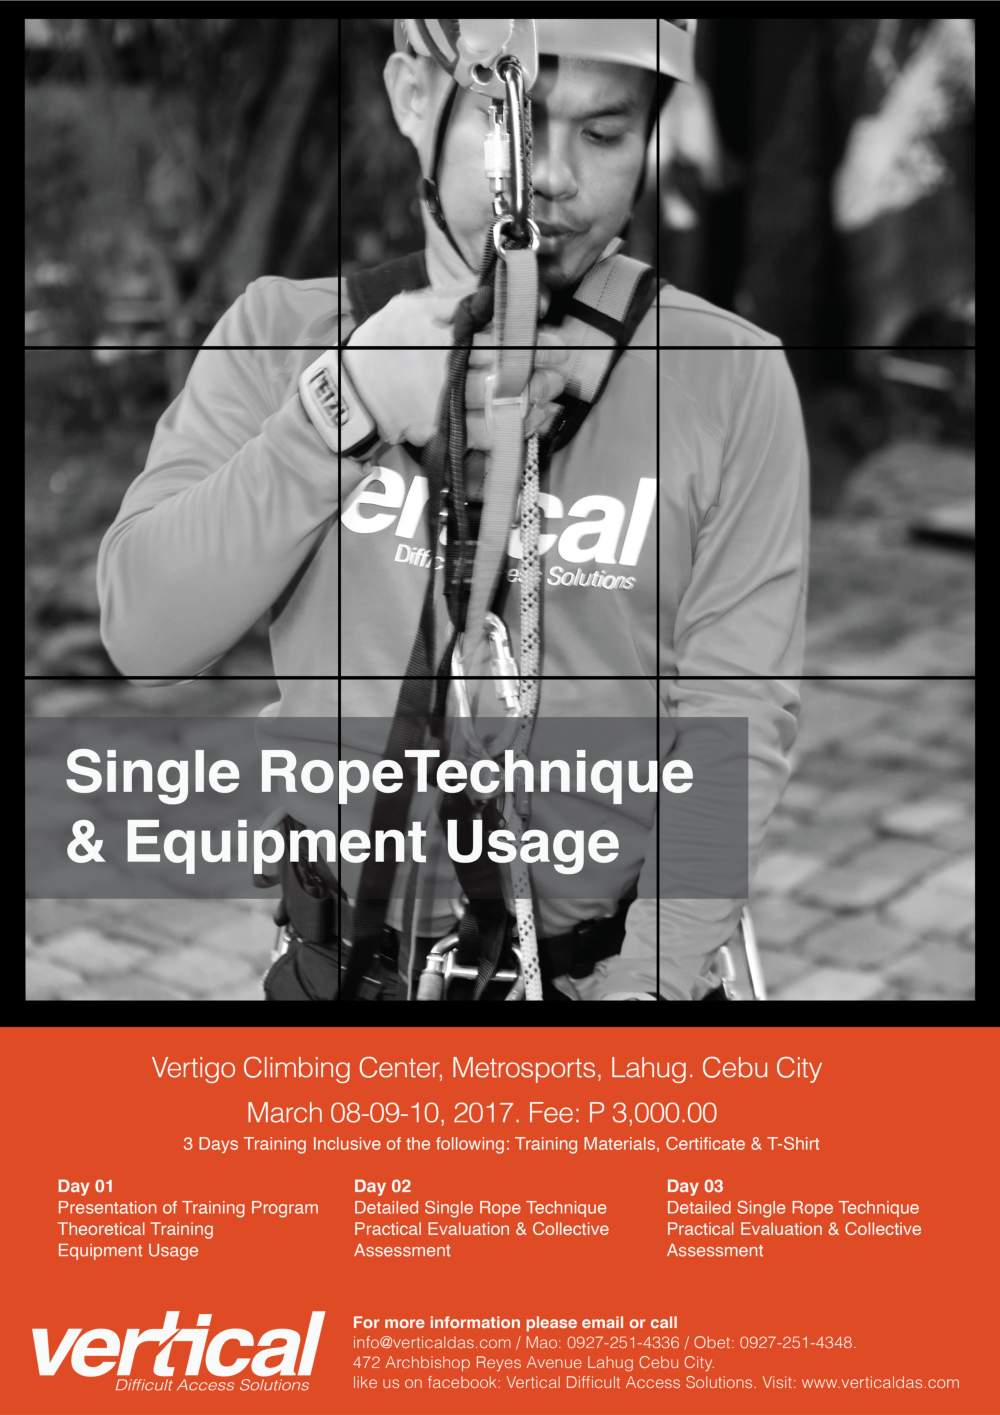 Single Rope Technique & Equipment Usage - Poster